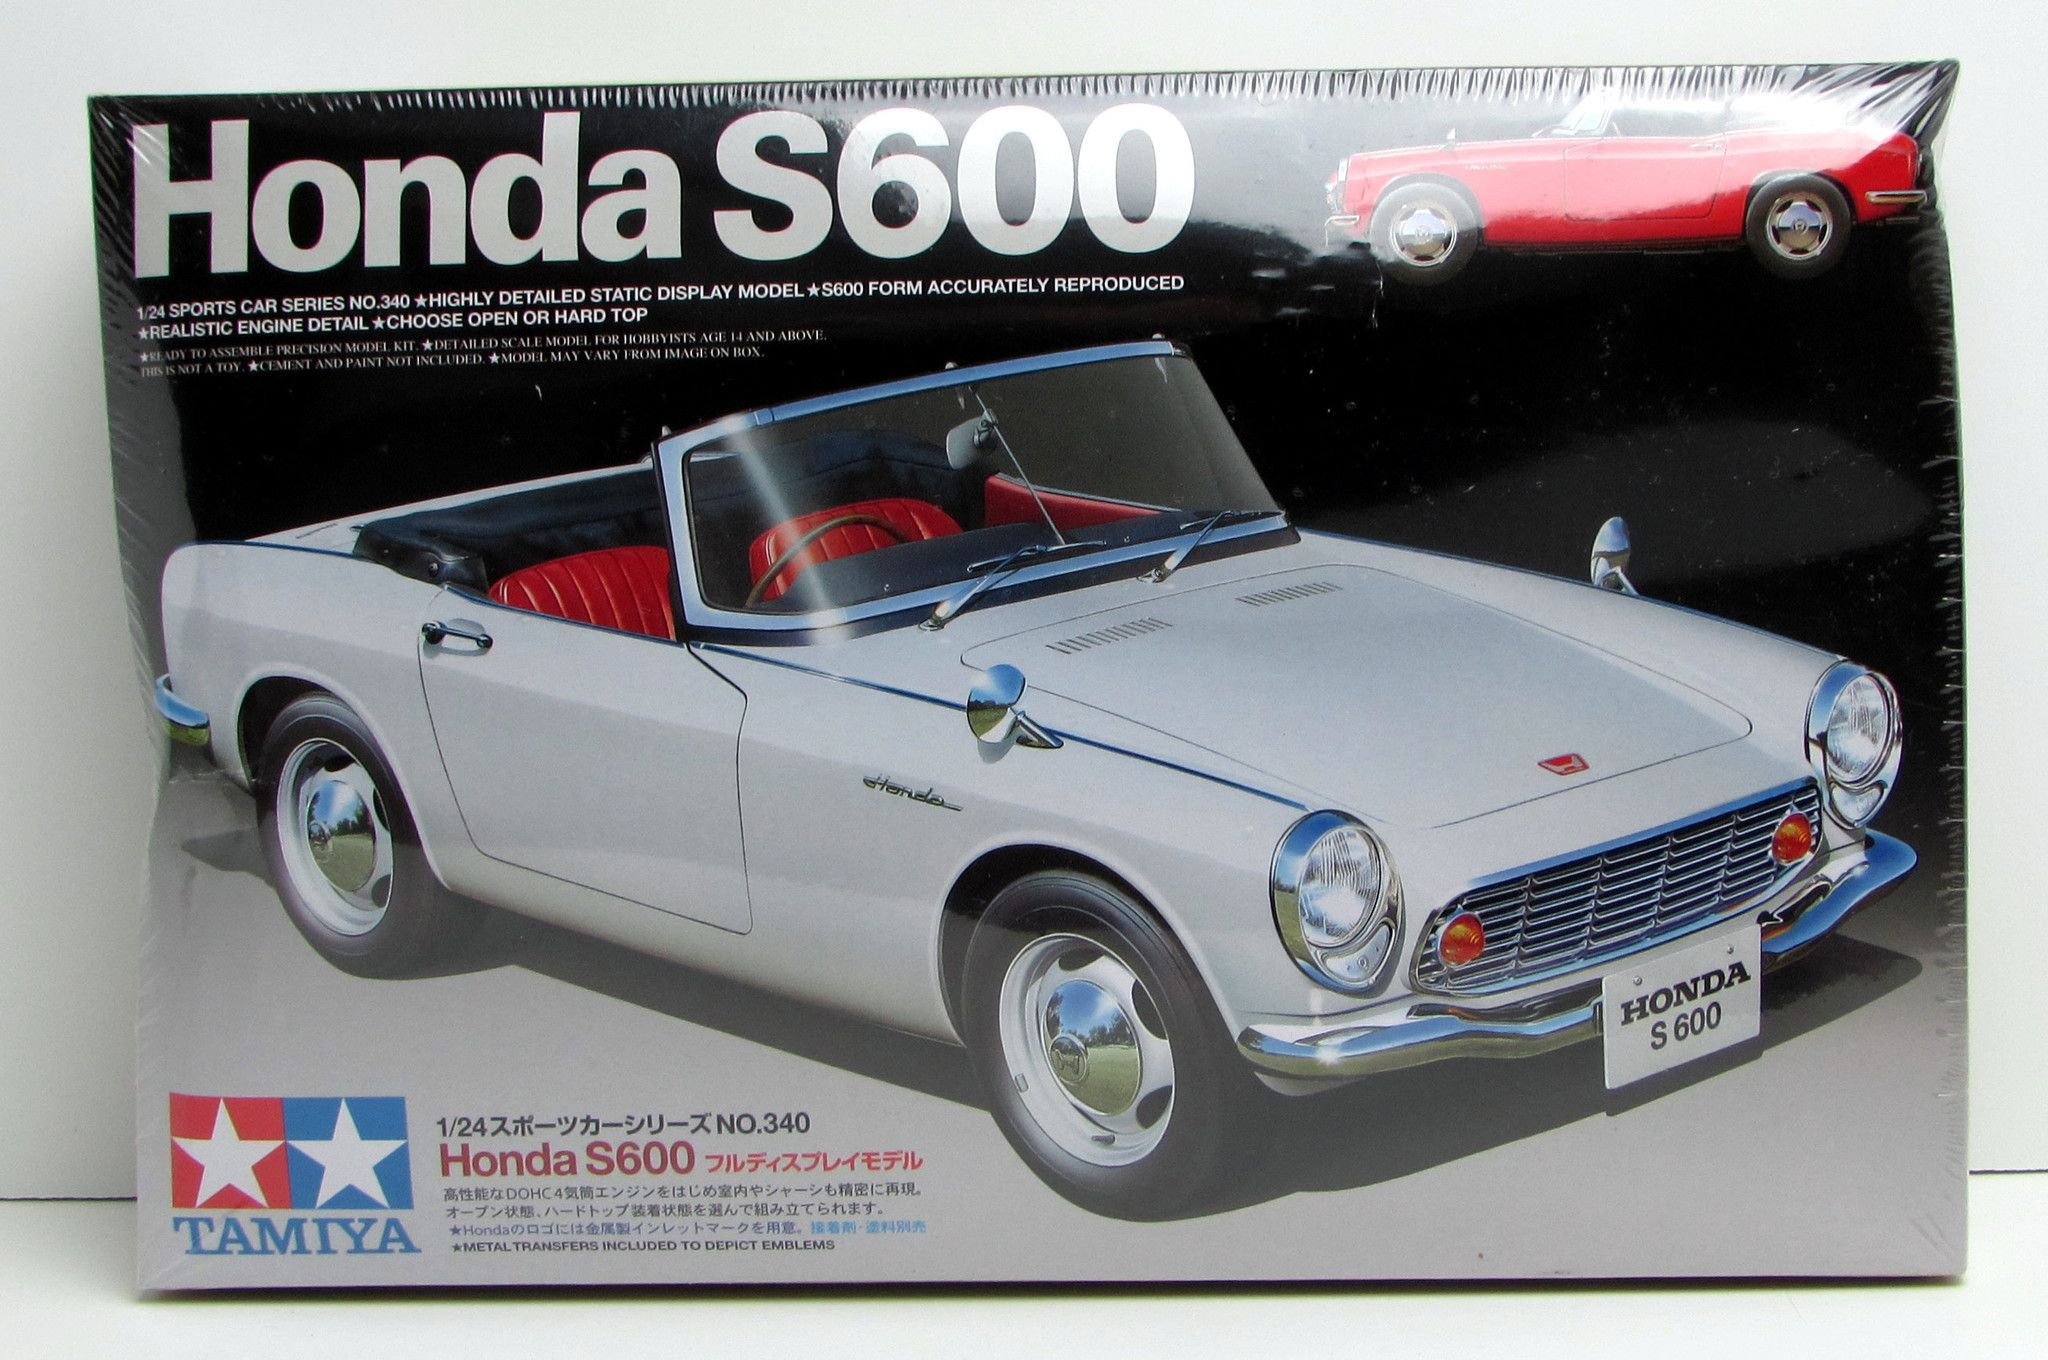 Honda S600 Brand New And Sealed. Tamiya Released This 1/24 Scale Model  Sports